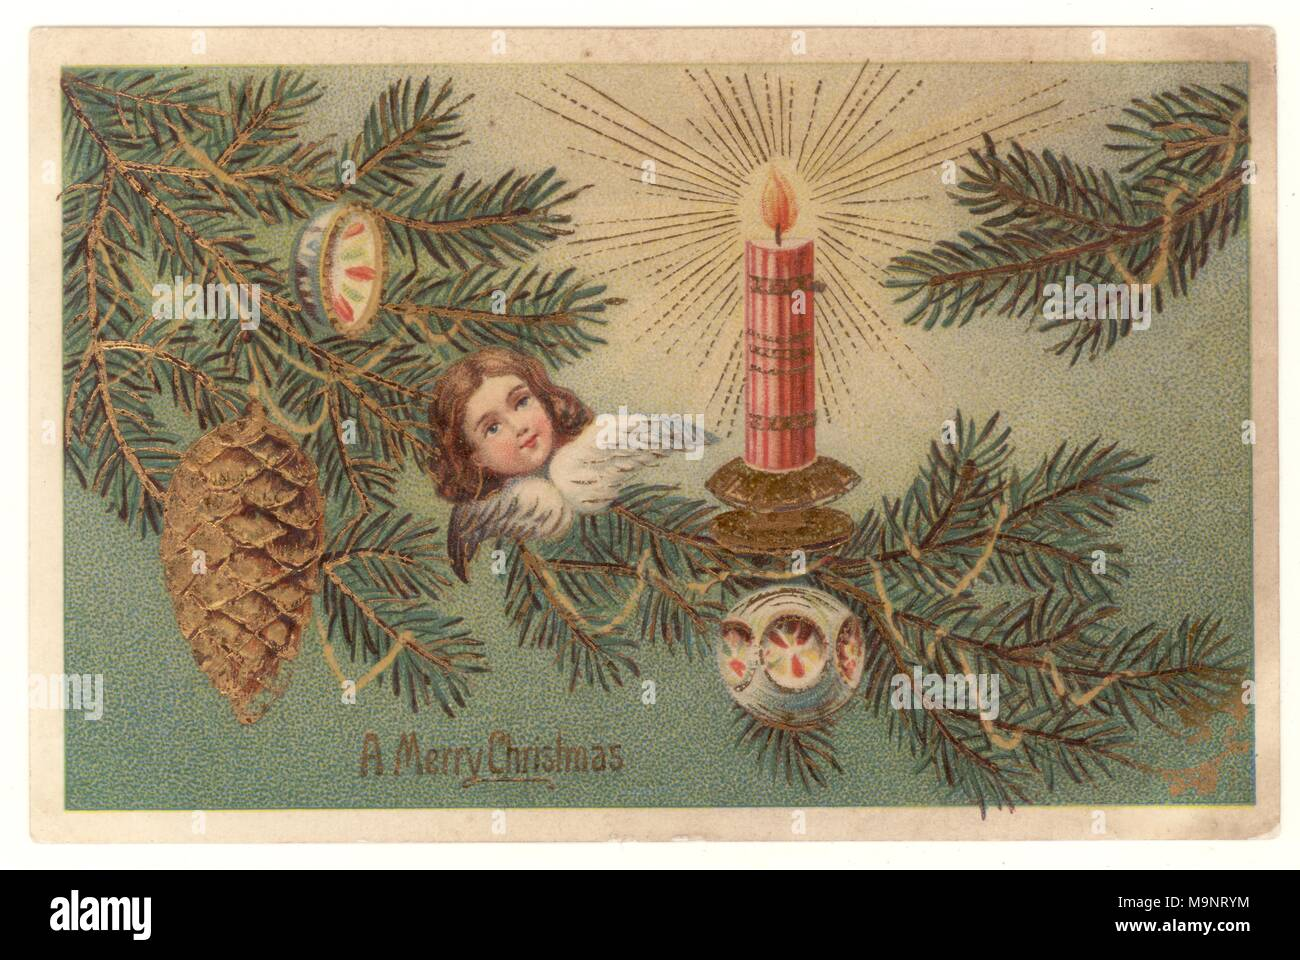 Edwardian Christmas Greetings postcard, depicting a Christmas tree with decorations, wishing a Merry Christmas, posted Dec 23 1906 - Stock Image